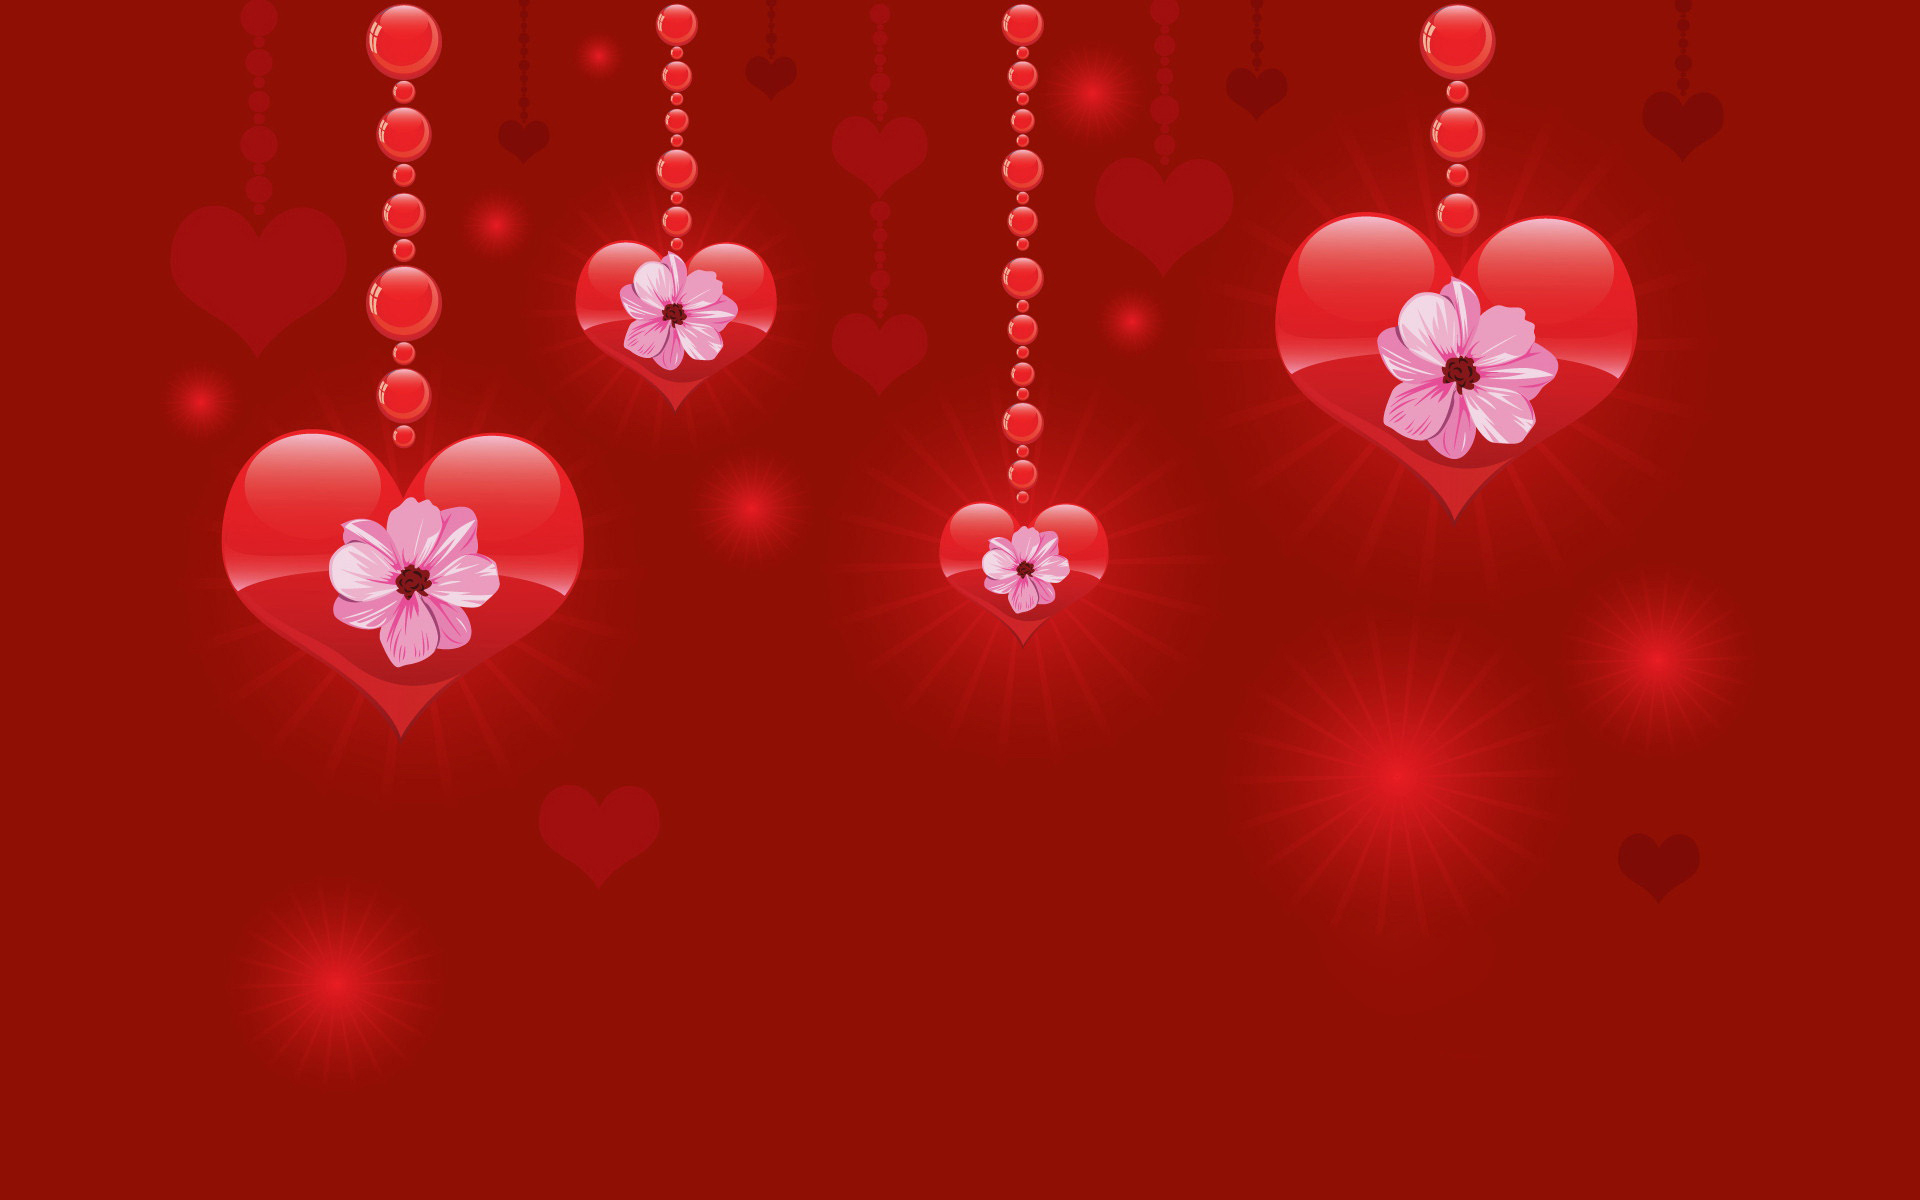 Heart at Valentines Day wallpapers and images   wallpapers 1920x1200